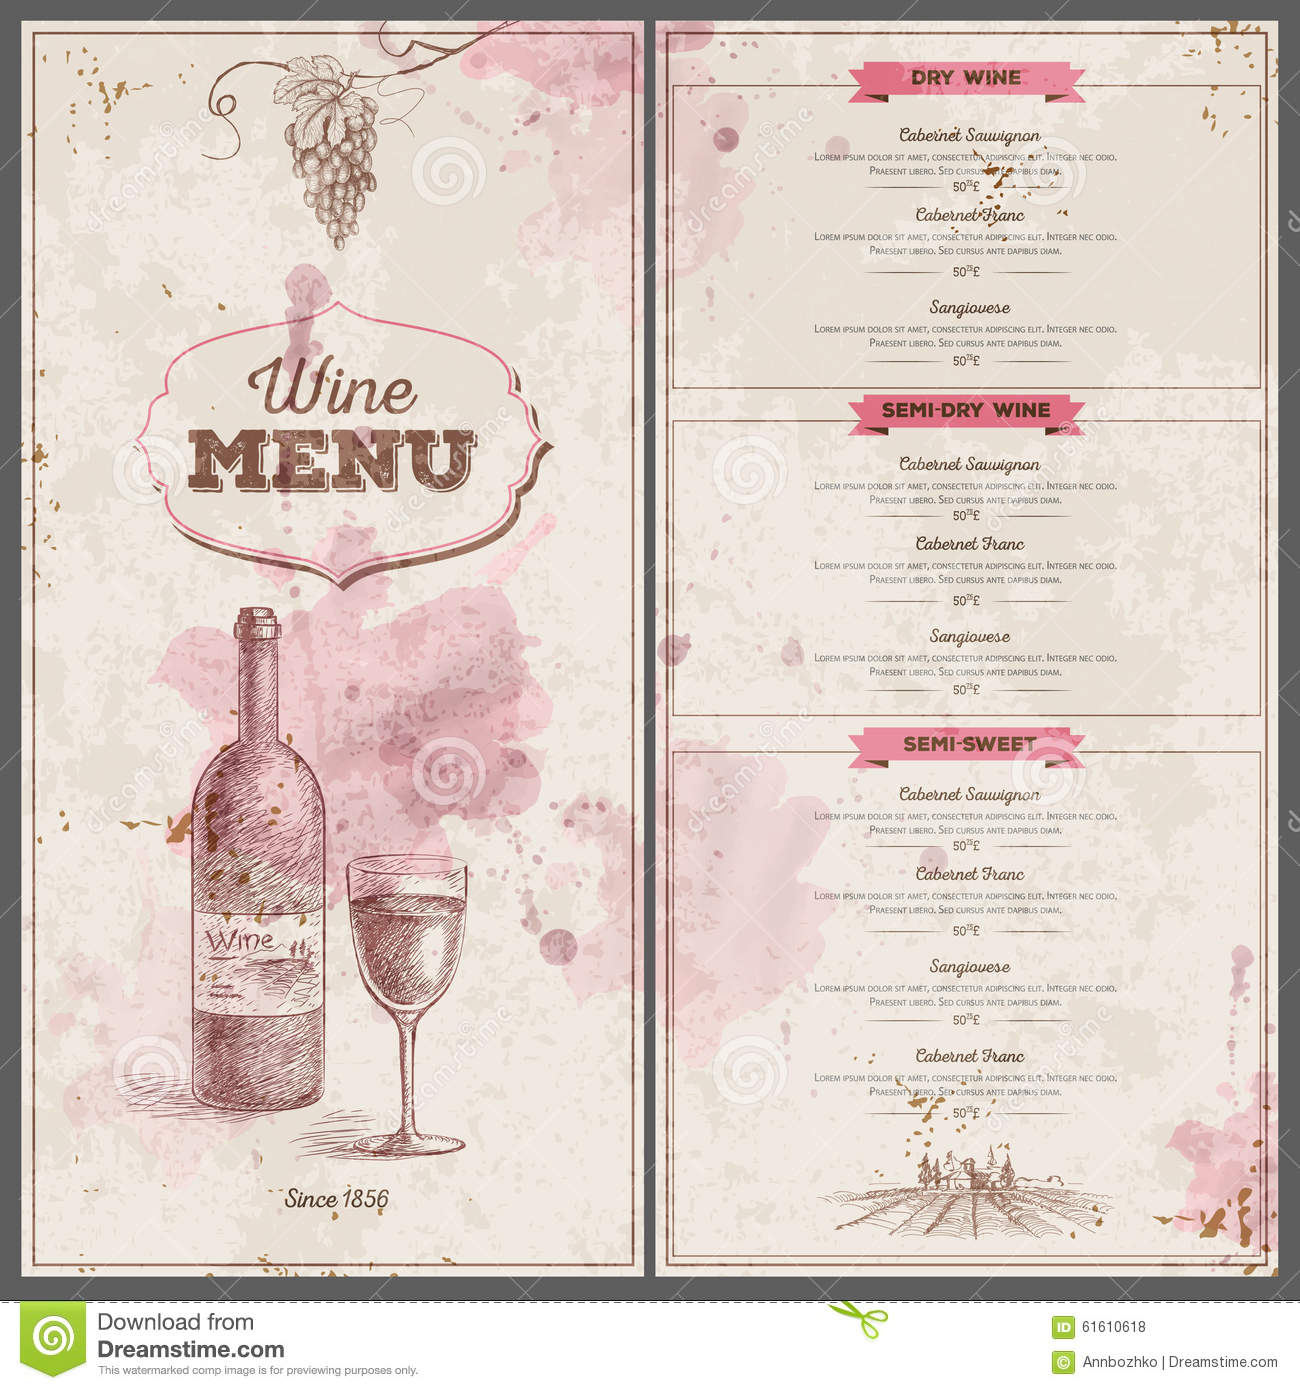 wine dinner menu template - vintage wine menu design document template stock vector